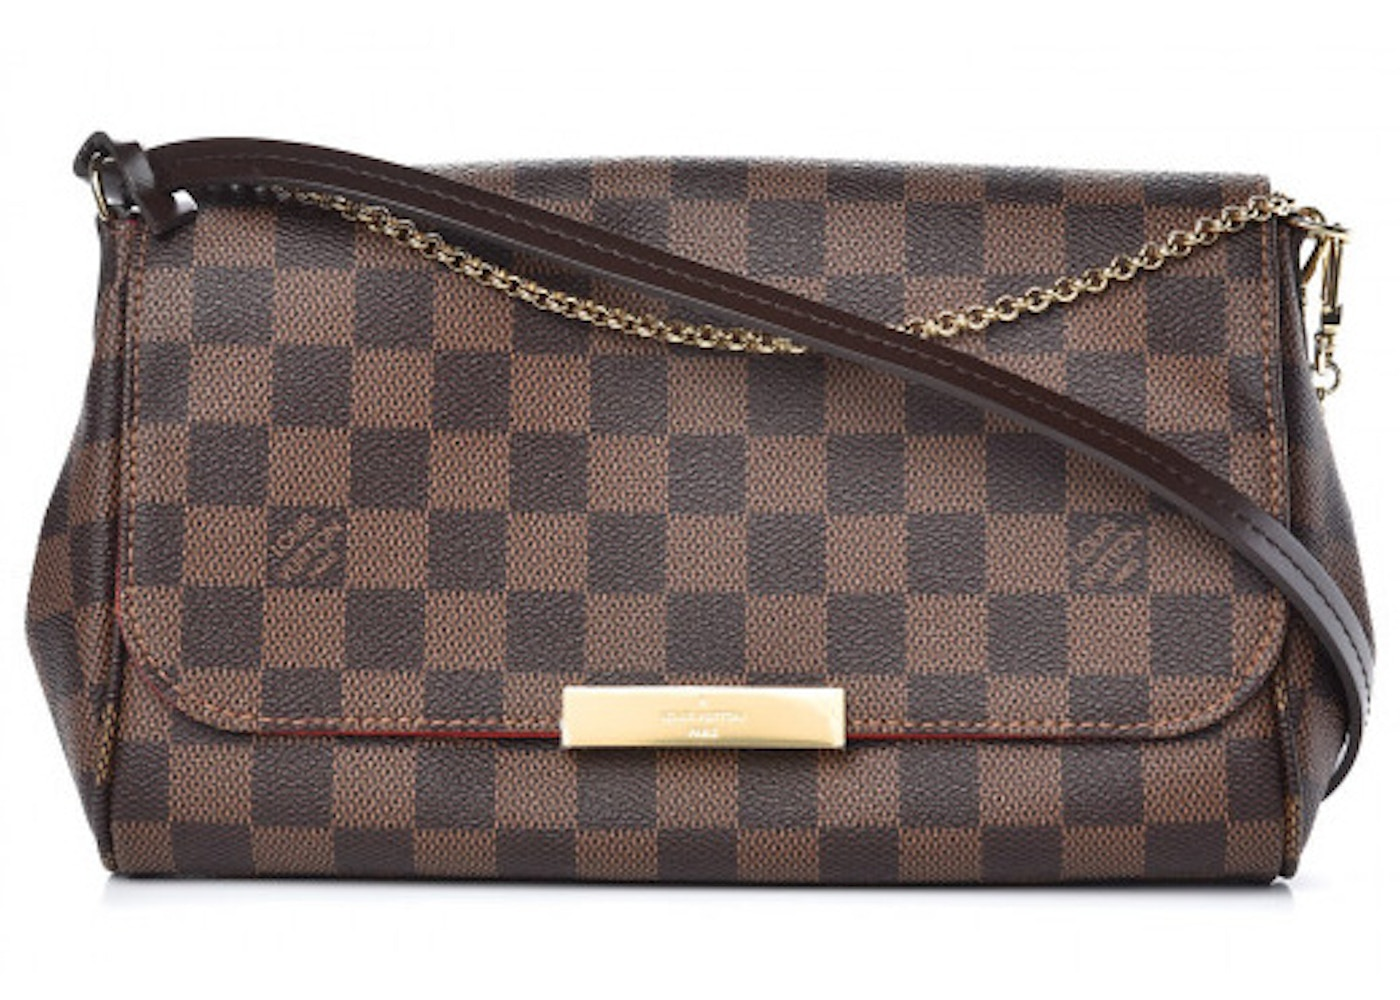 a3c48f0a6a5 Louis Vuitton Favorite Damier Ebene MM Red Lining